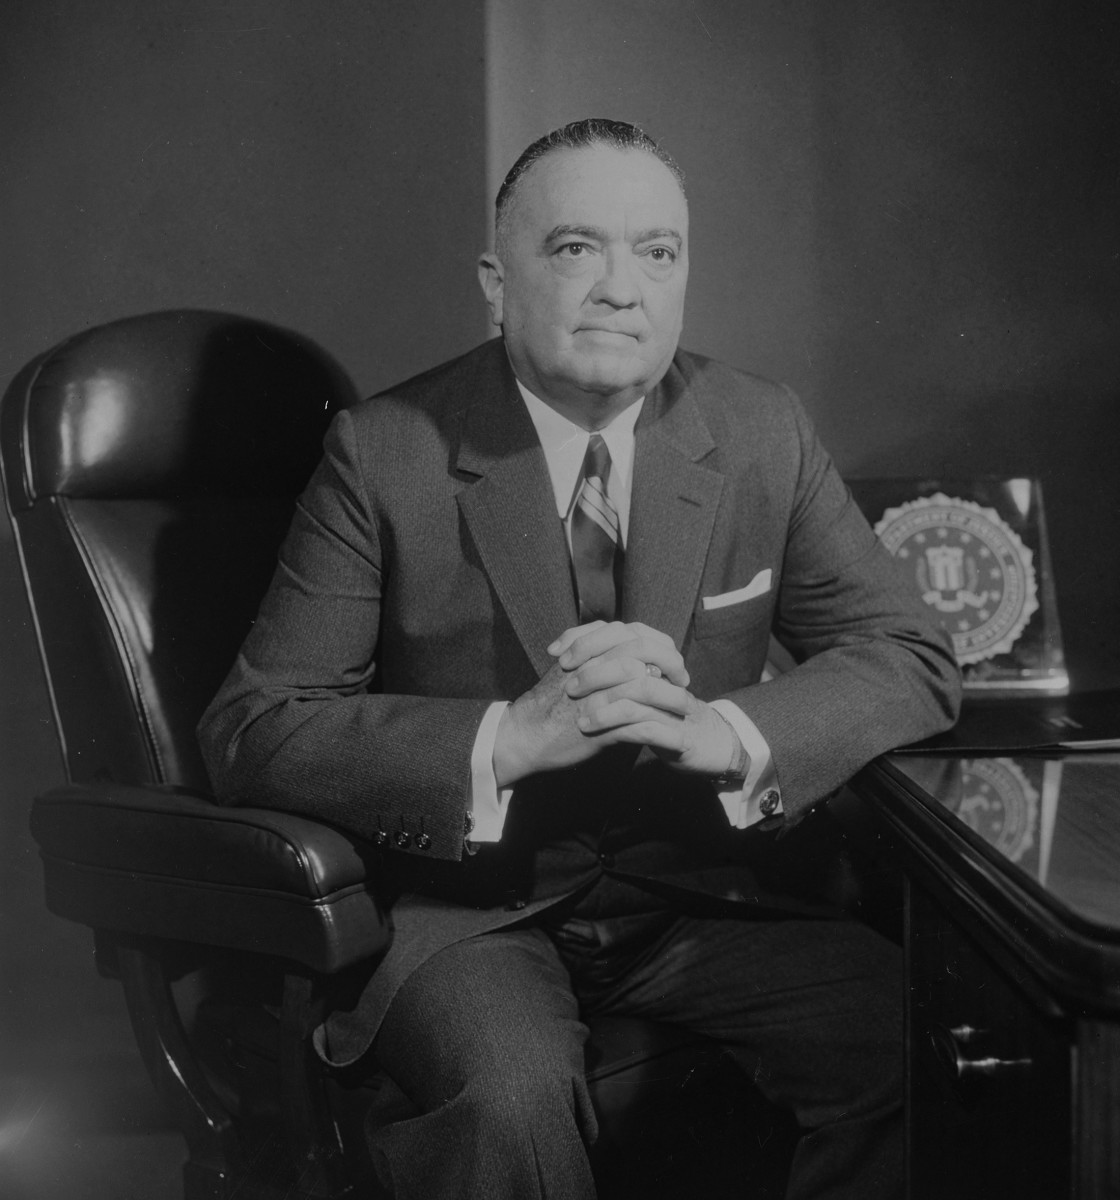 Director of the FBI J. Edgar Hoover